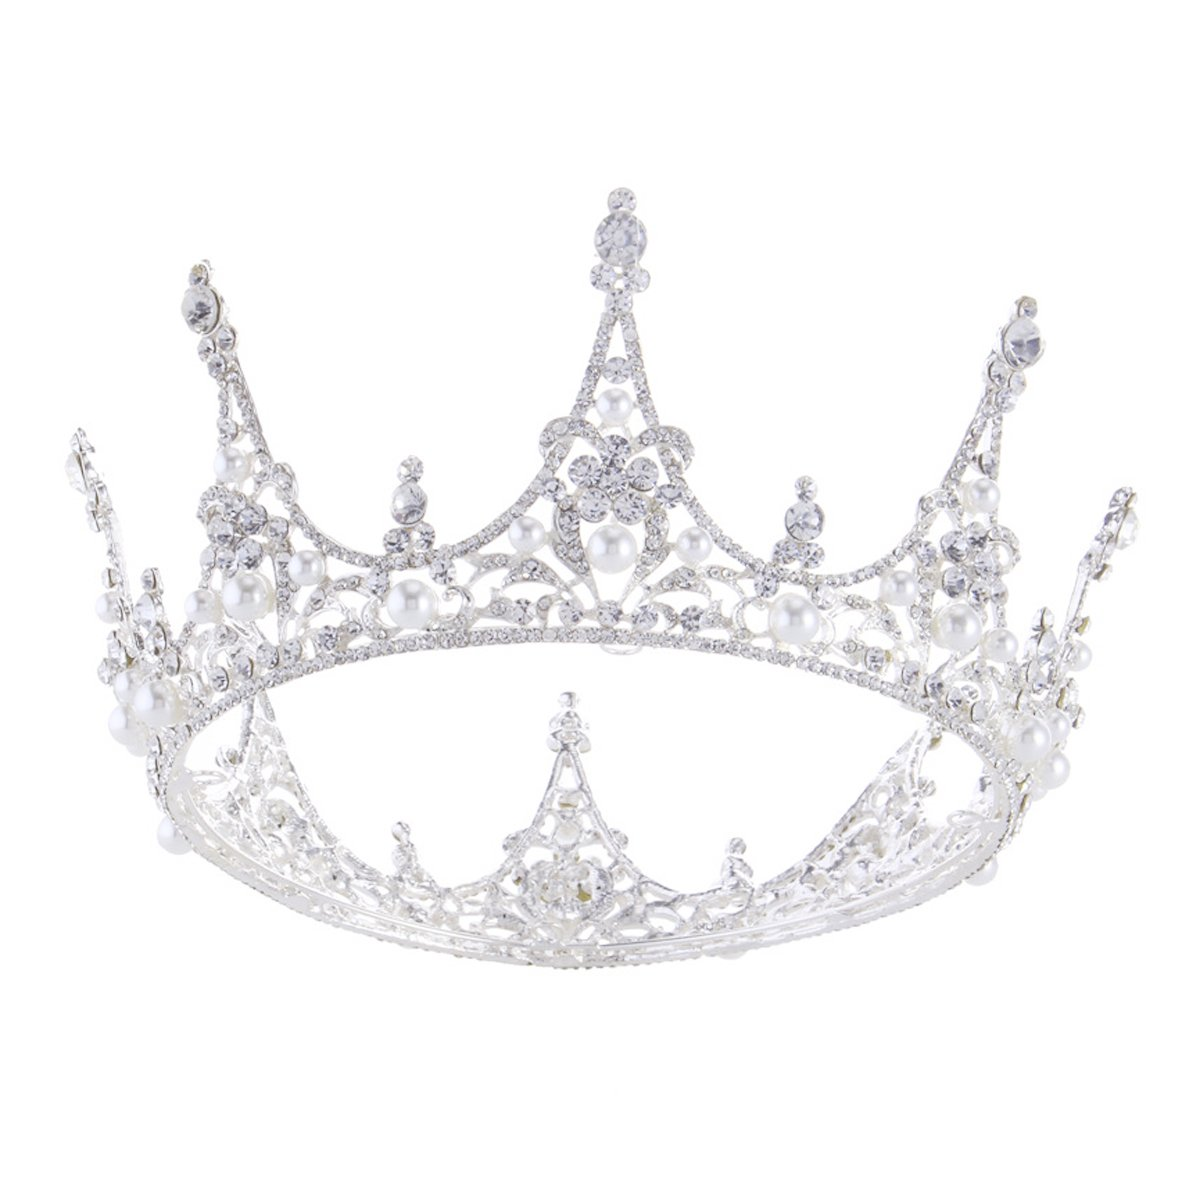 SSNUOY Silver Plated Pearl Crystal Bridal Crown Princess Crown Headpiece for Woman